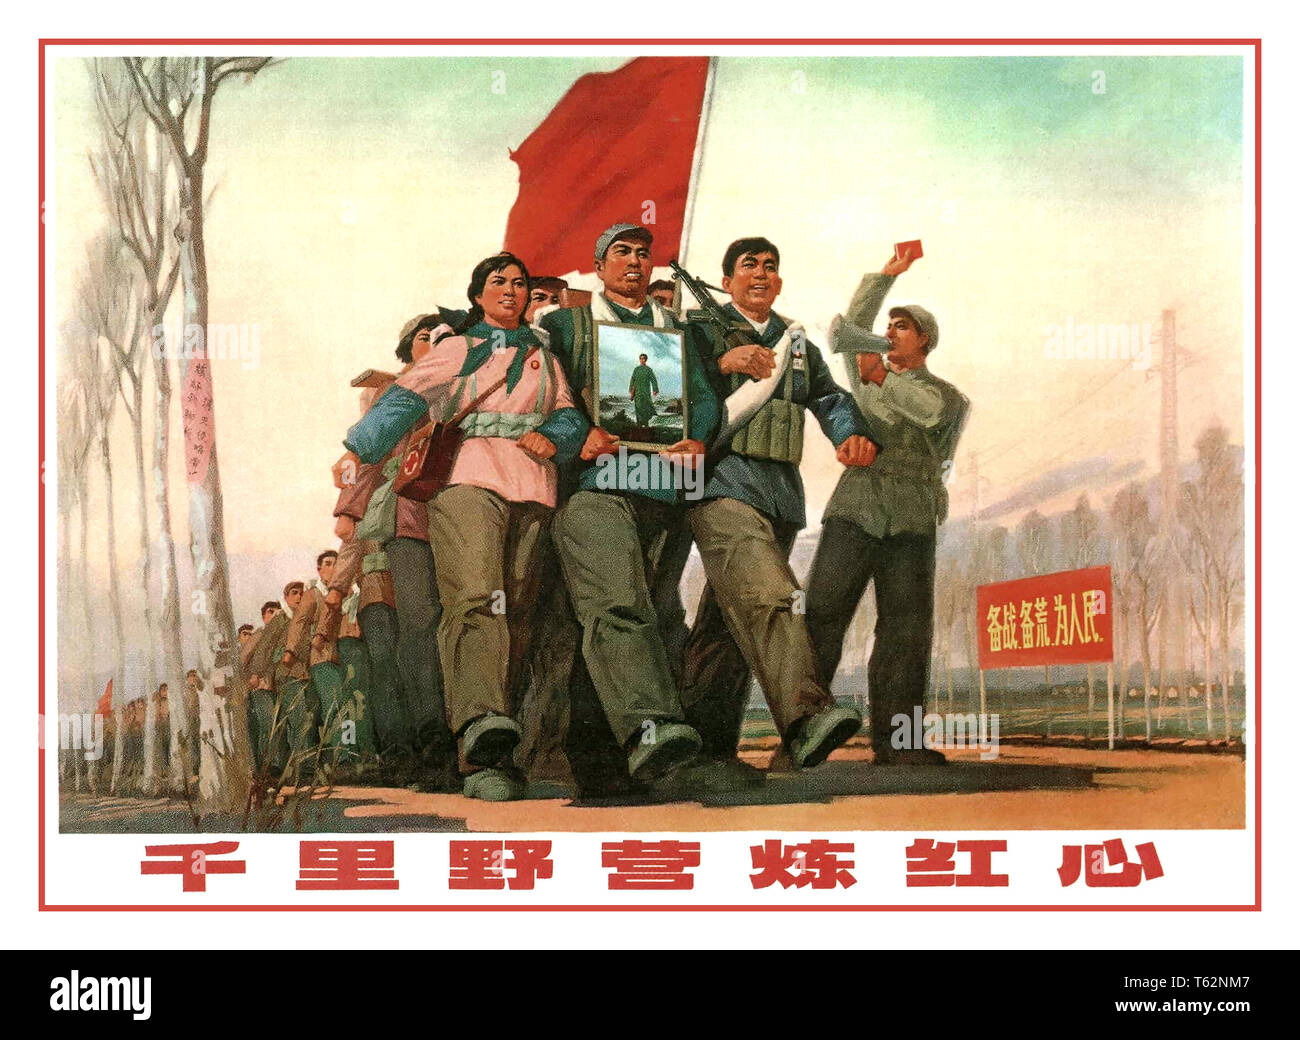 "Vintage 1970's Chinese Propaganda Poster: To Go on a Thousand 'Li' vintage Chinese propaganda poster 1971 titled ""To Go on a Thousand 'Li' March to Temper a Red Heart"" published by Shanghai Renmin Chubanshe. - Stock Image"